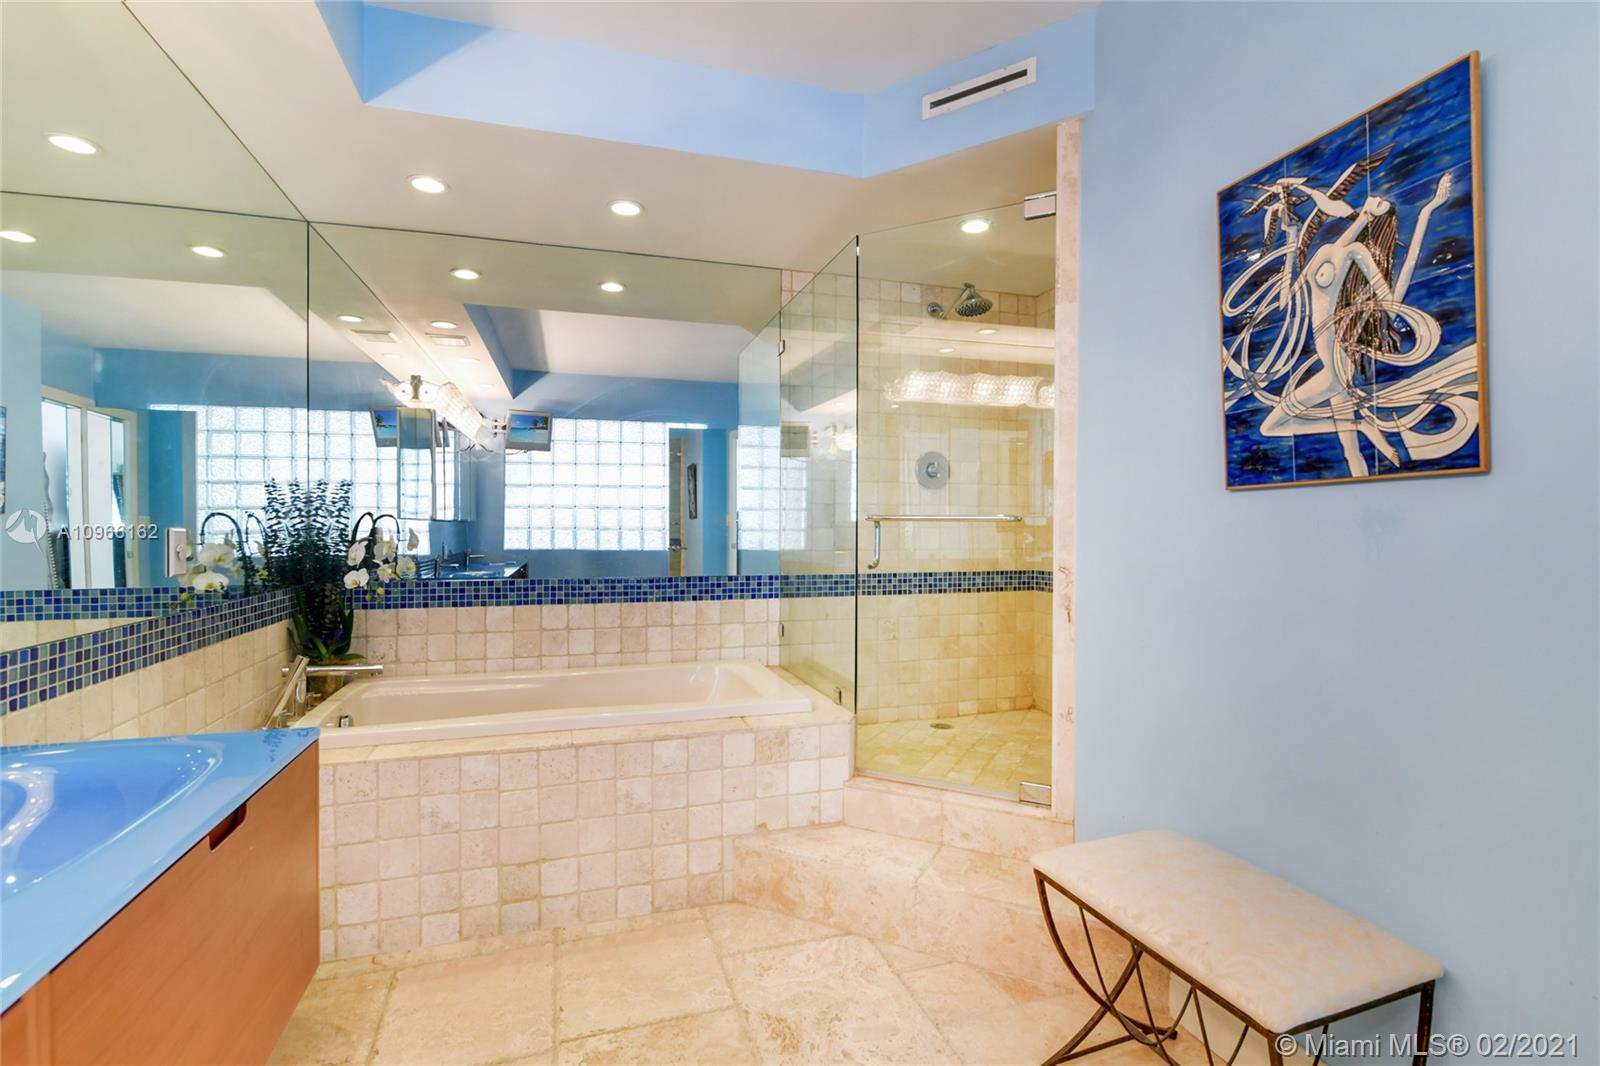 Photo of 9801 Collins Ave #4Z Direct Ocean, Bal Harbour, Florida, 33154 - Master Bathroom, 2 sinks, shower and bathtub separated